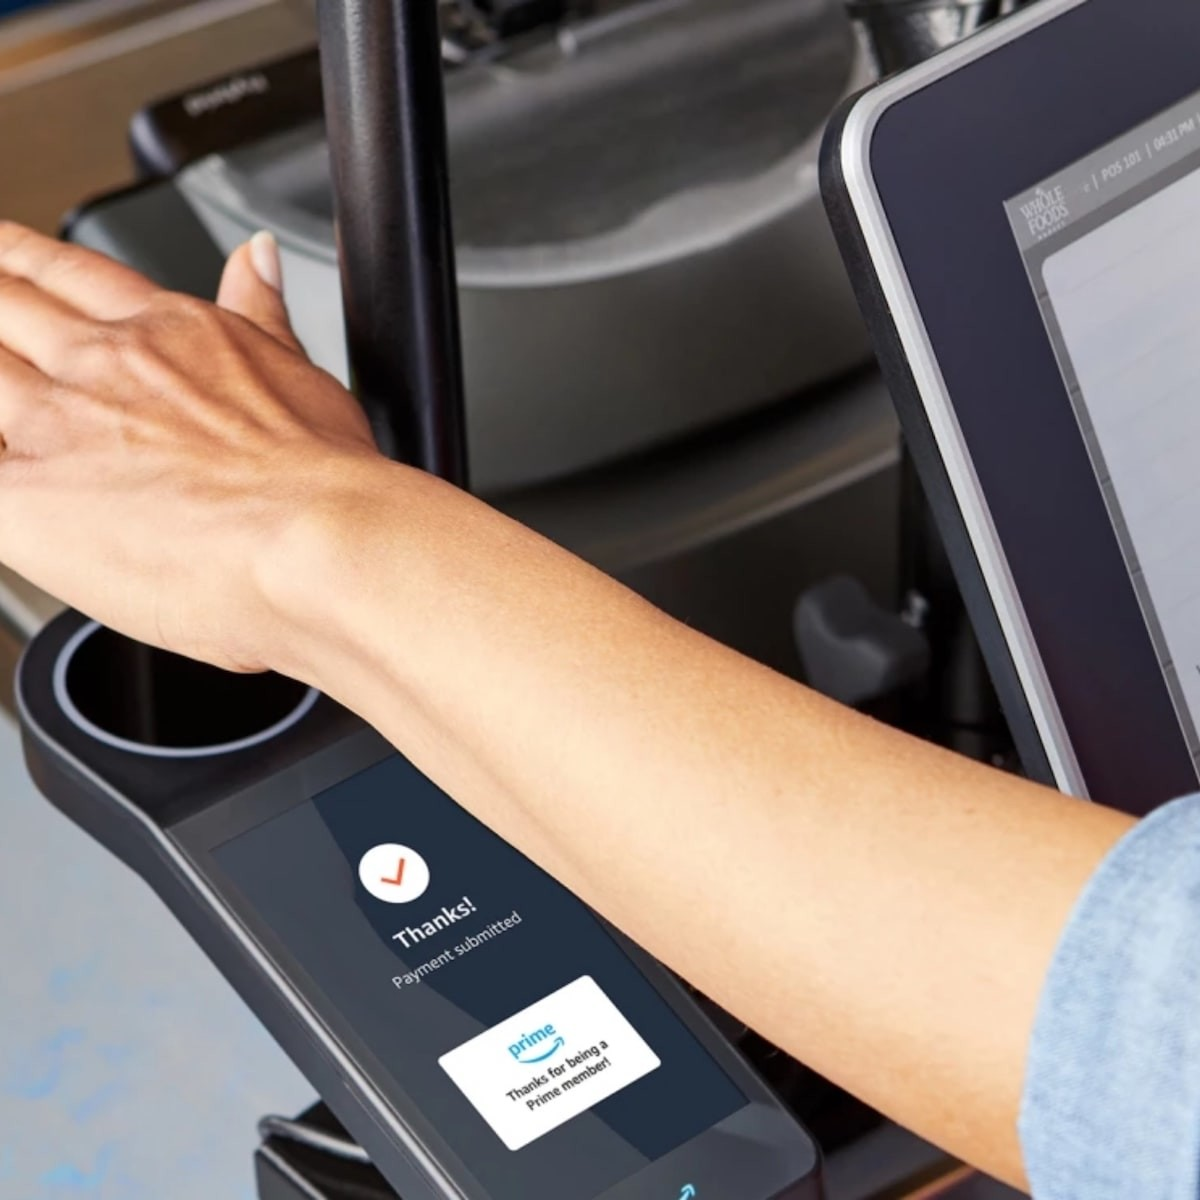 Amazon One brings contactless payments to Whole Foods stores thumbnail